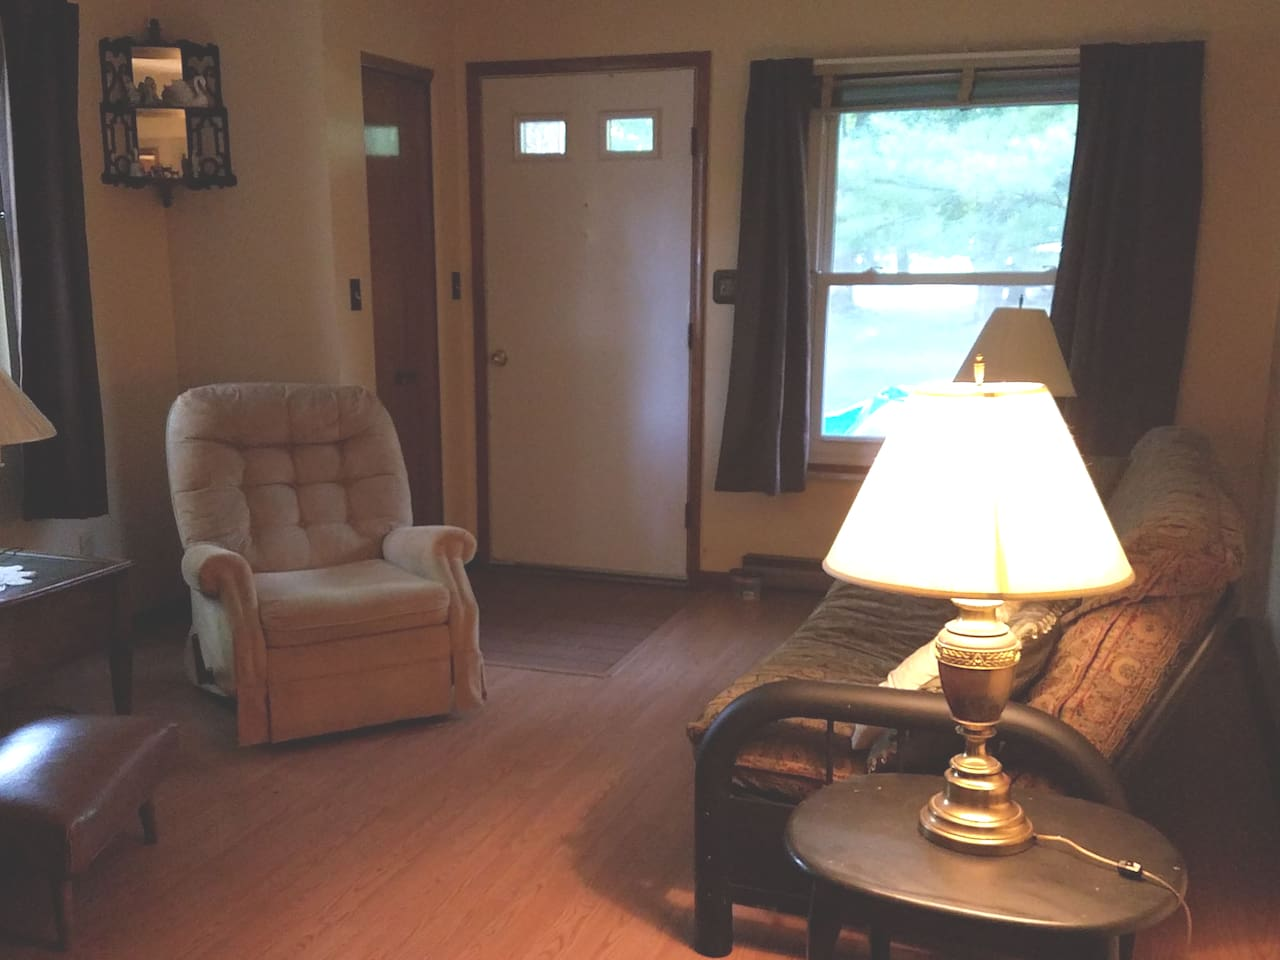 Futon sleeps 2. Separate entrance from main house.